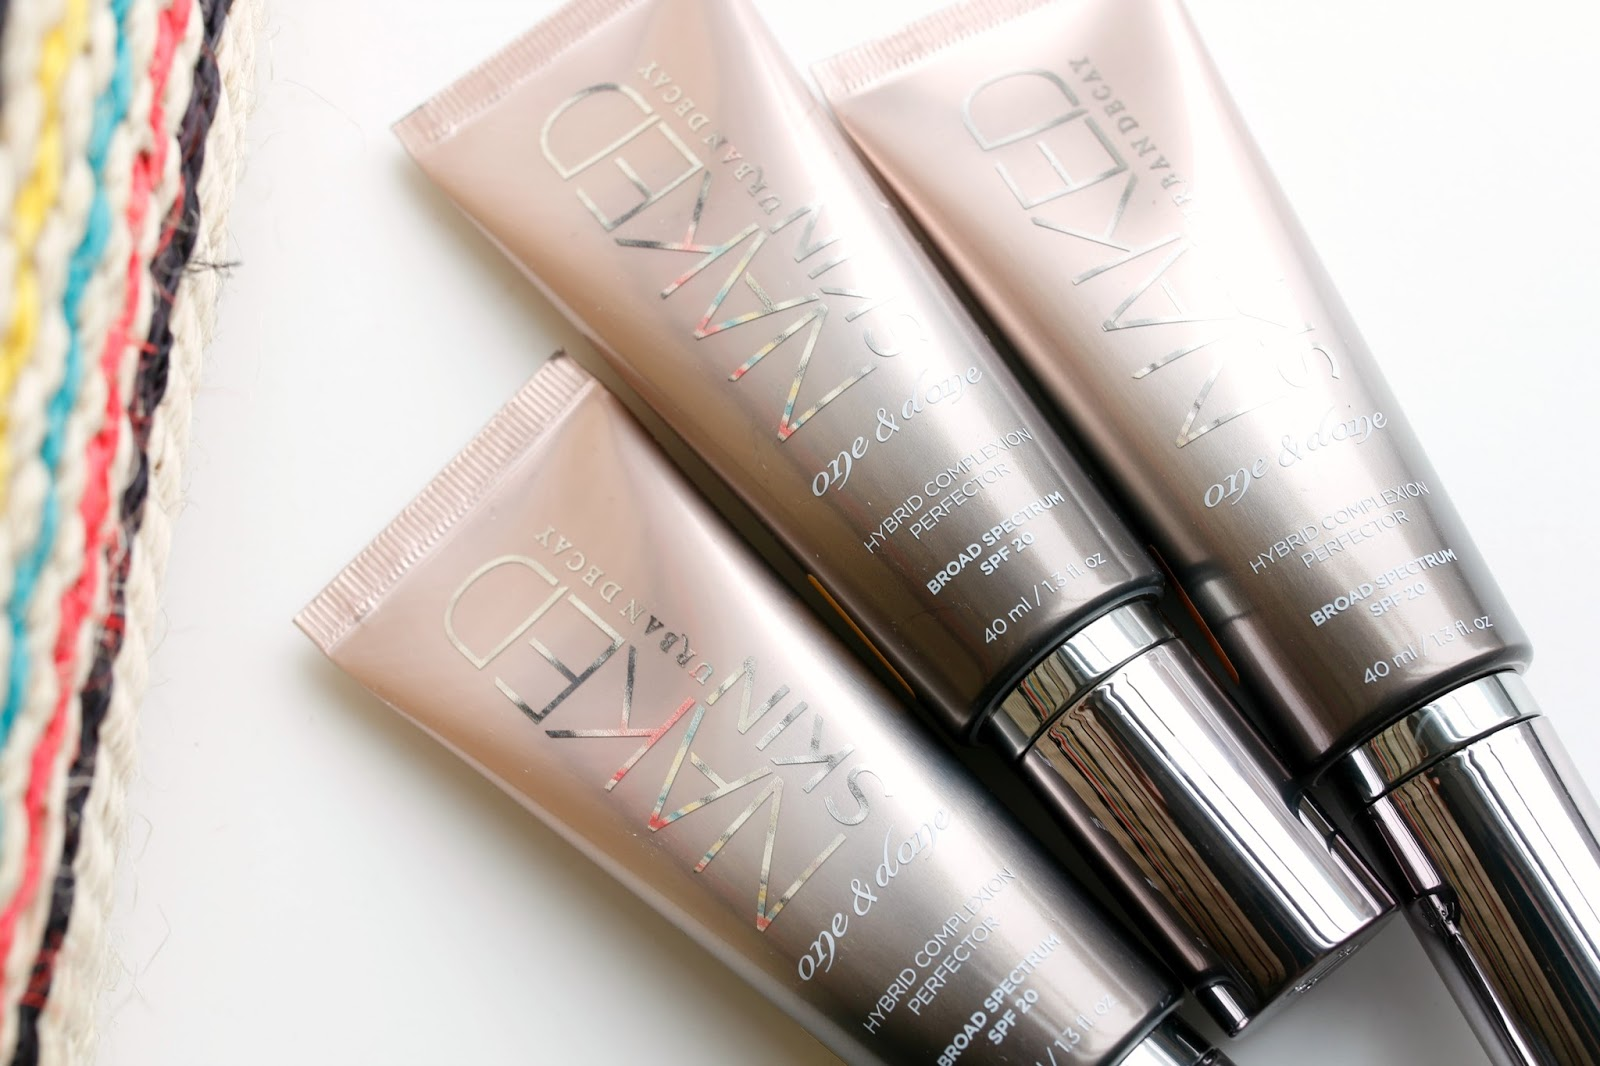 Review of the new Urban Decay Naked Skin Complexion Perfectors with swatches of every shade.